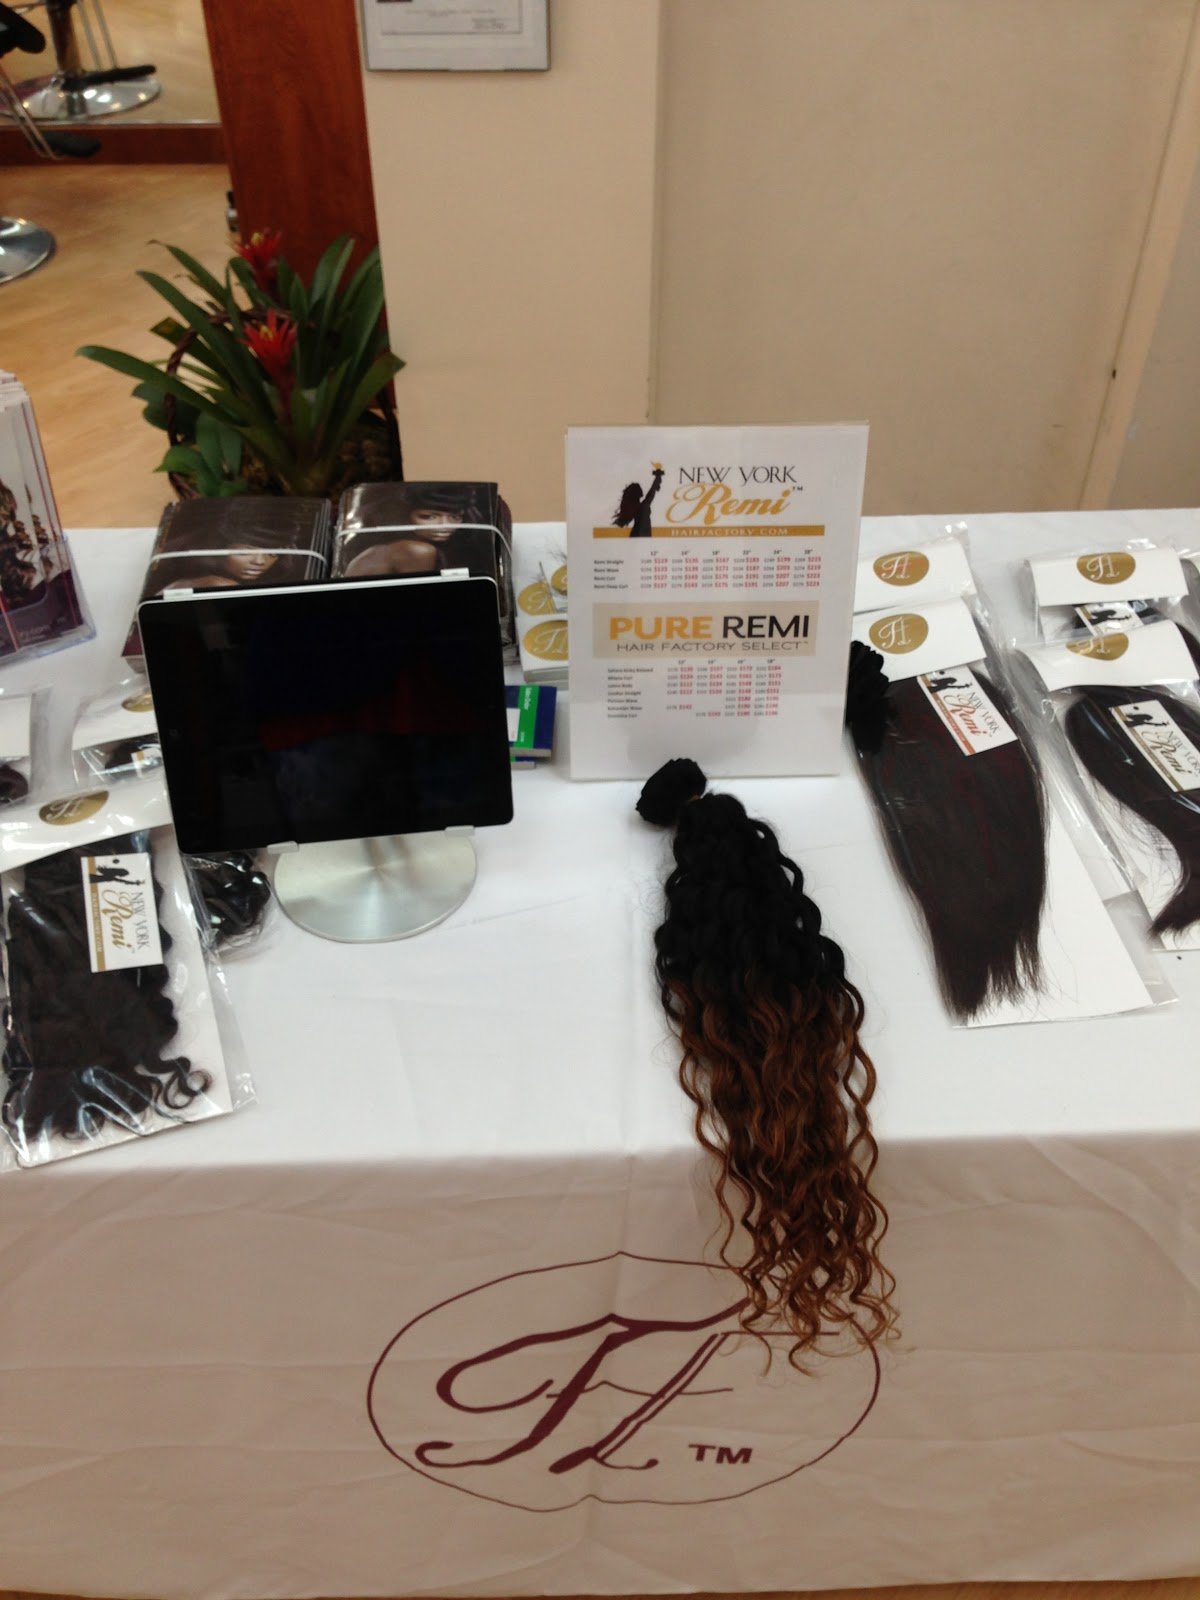 Fab Finds in a Beat!: Fab EVENT with the Hair Factory PopUp Shop!